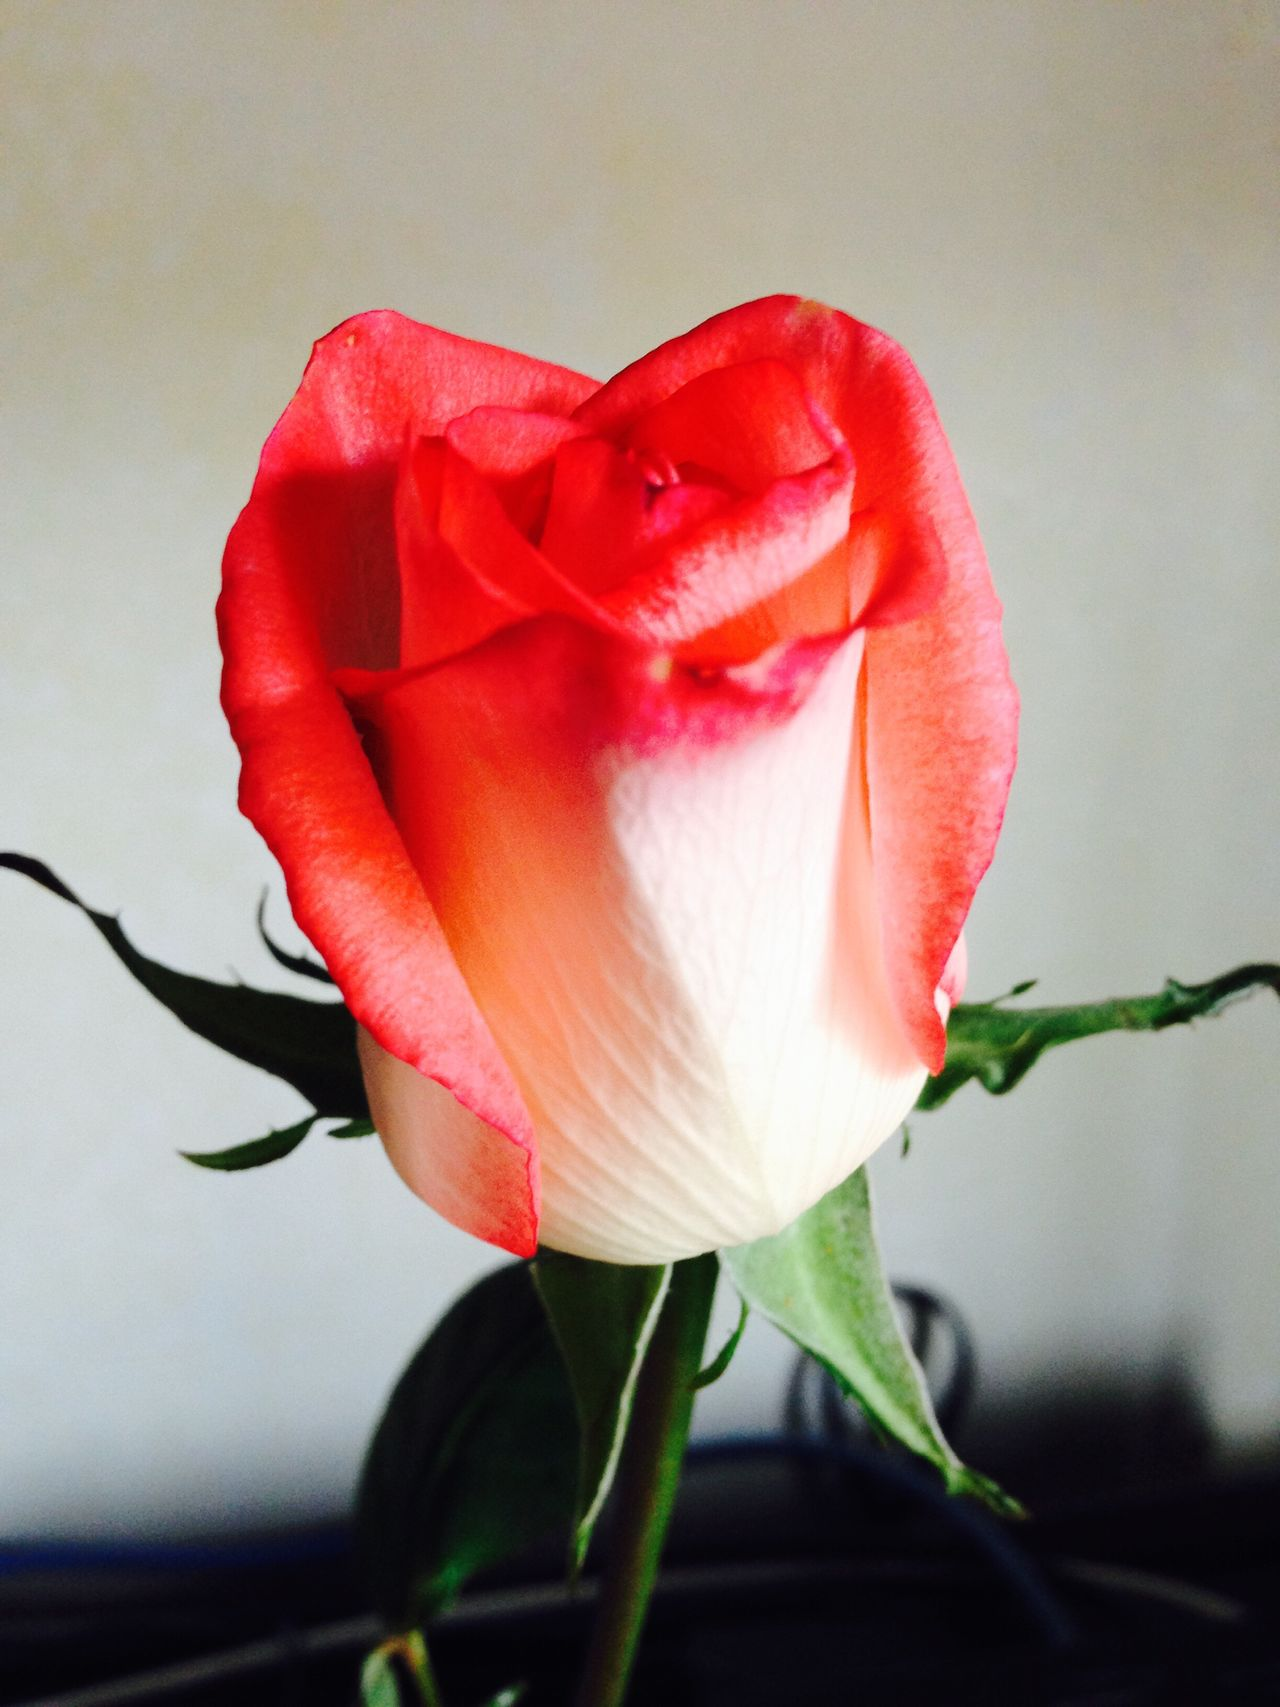 White and red rose Flower Petal Fragility Beauty In Nature Flower Head Nature Growth Freshness Close-up Plant Rose - Flower Blooming Red No People Indoors  Botany Botanical One Flower Vertical Colour Image